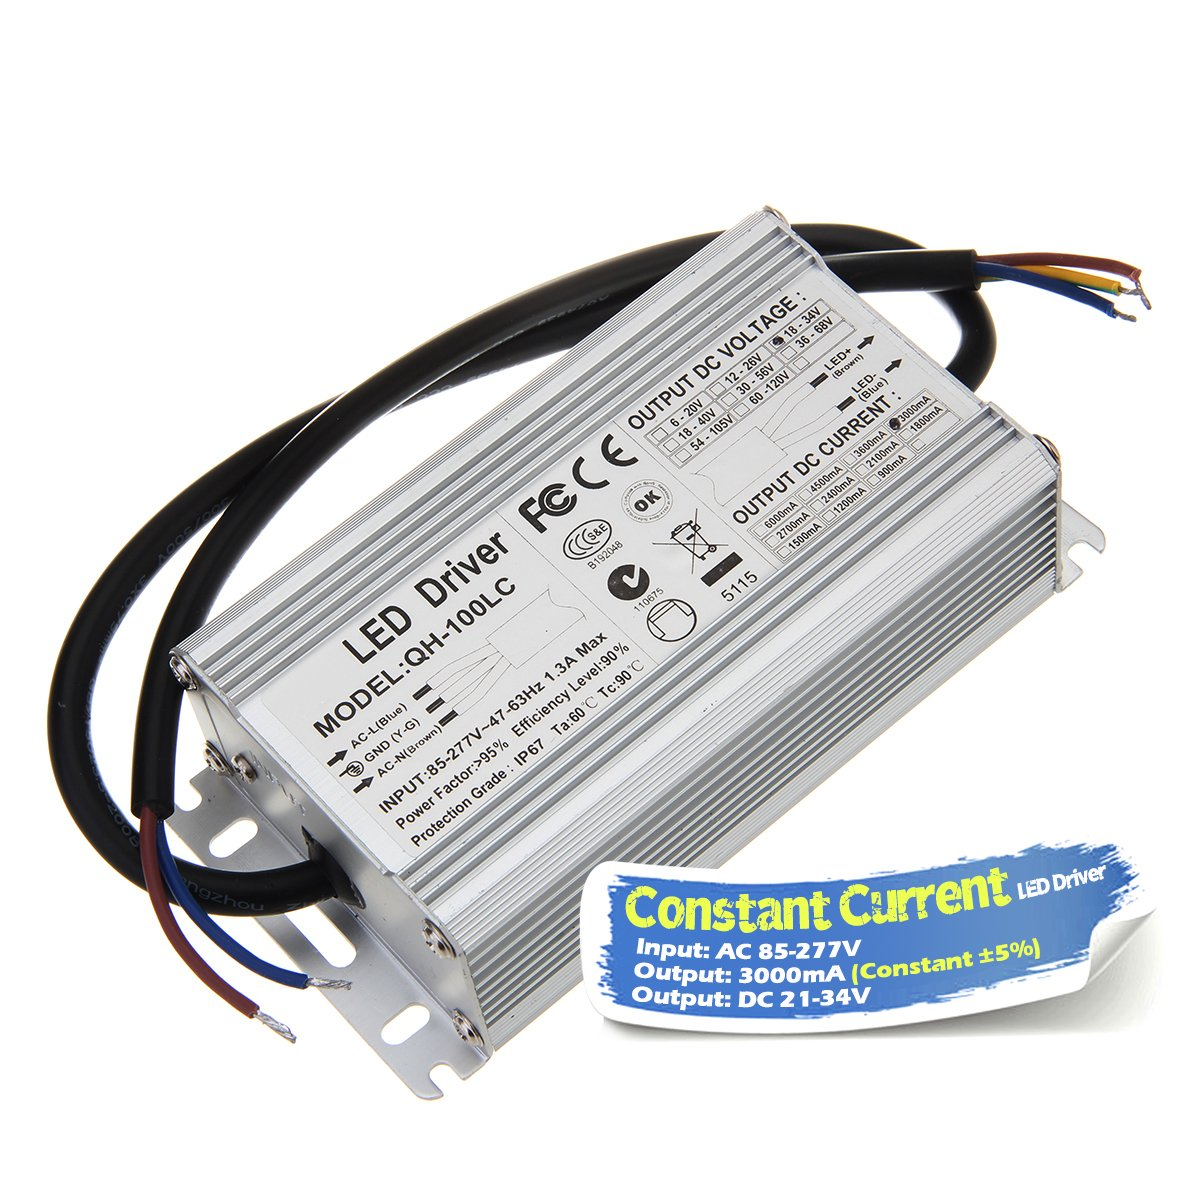 Chanzon LED Driver 3000mA (Constant Current Output) 21V-34V (In85-277V AC-DC) (7-10)x10 70W 80W 90W 100W IP67 Waterproof High Power Supply 3000 mA Lighting Transformer for 100 W COB Chips (Aluminium)